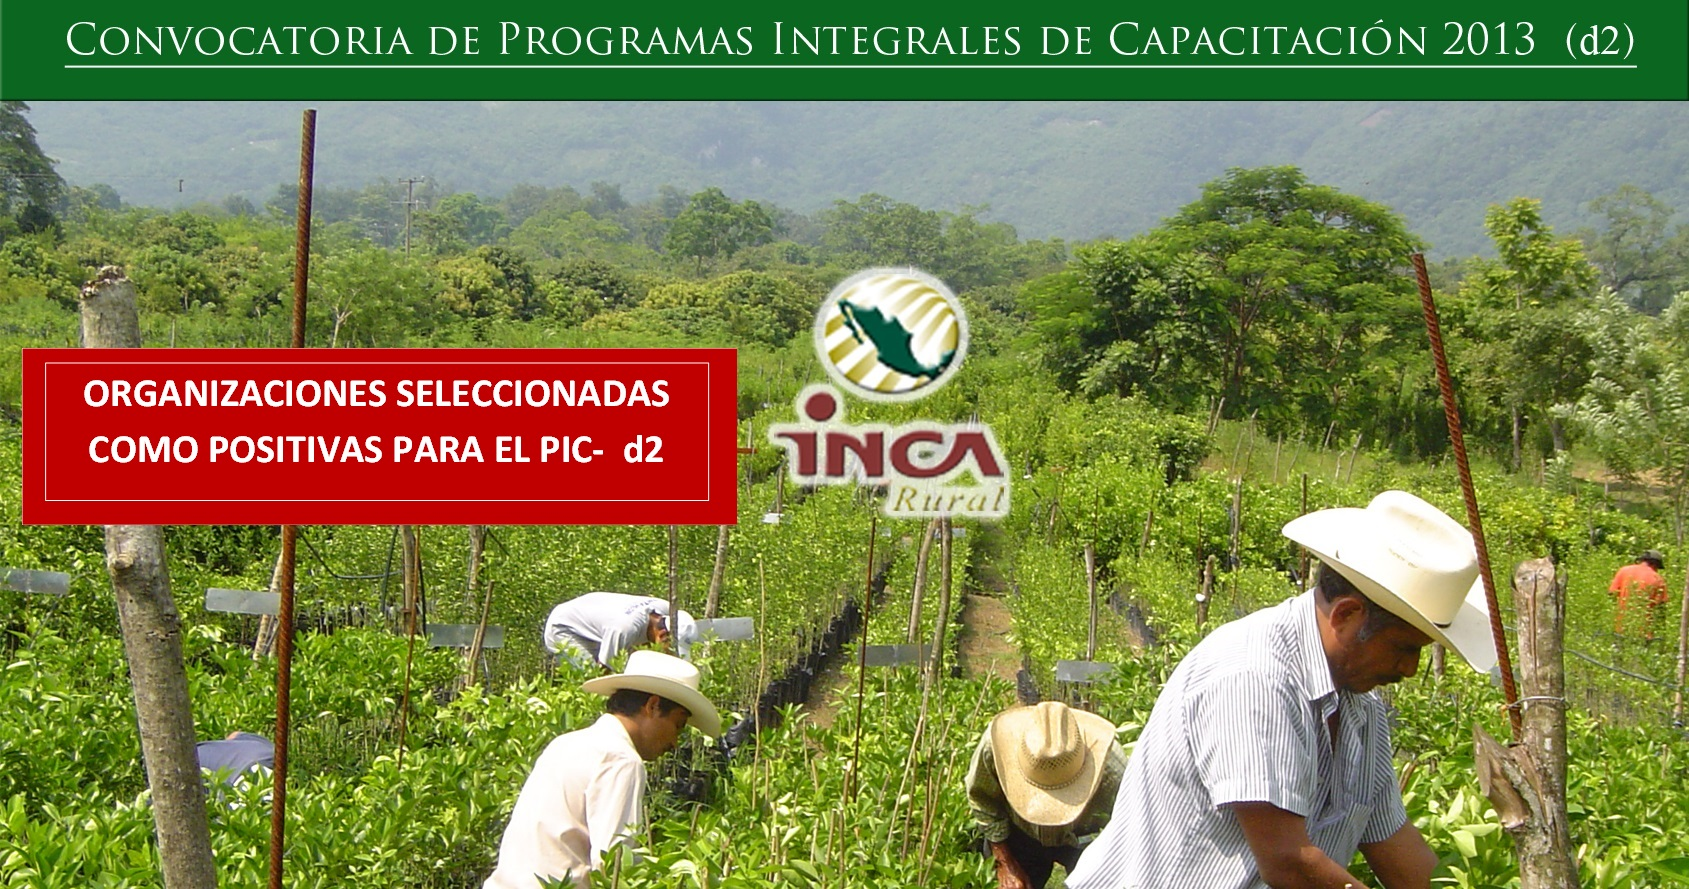 Convocatoria: Programas Integrales de Capacitaci?n Estatales- 2013 d2